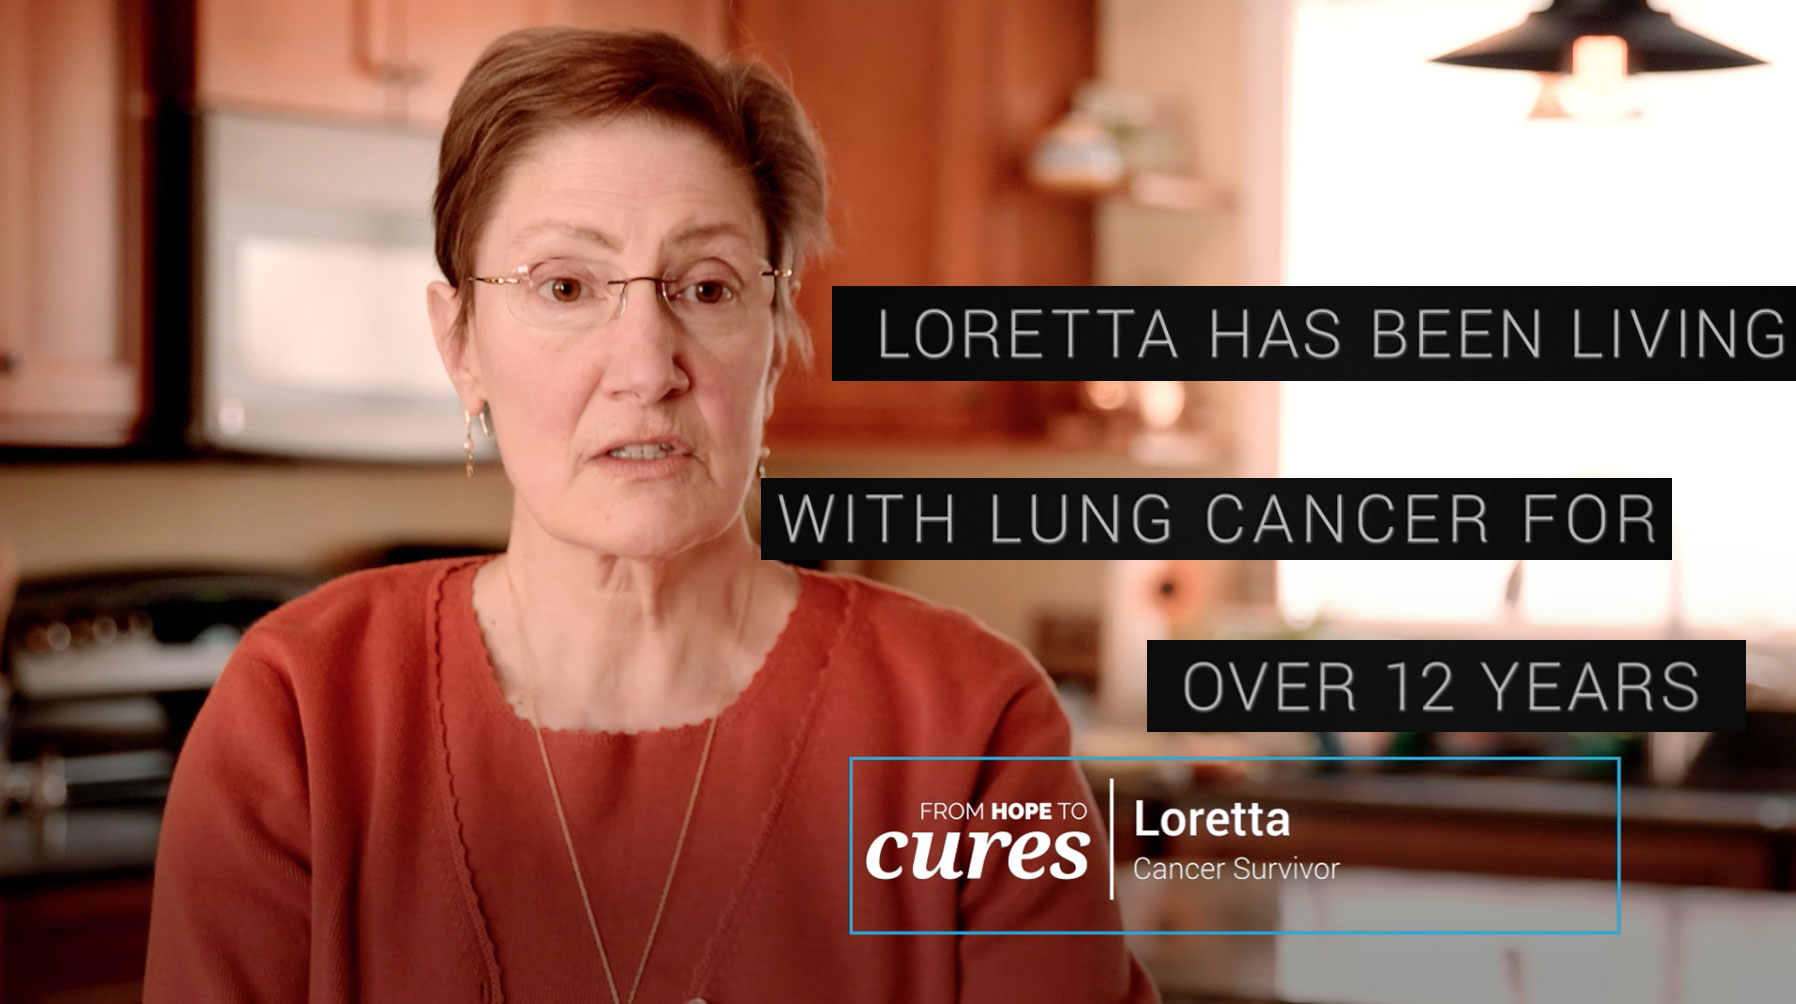 Loretta-is-living-with-lung-cancer